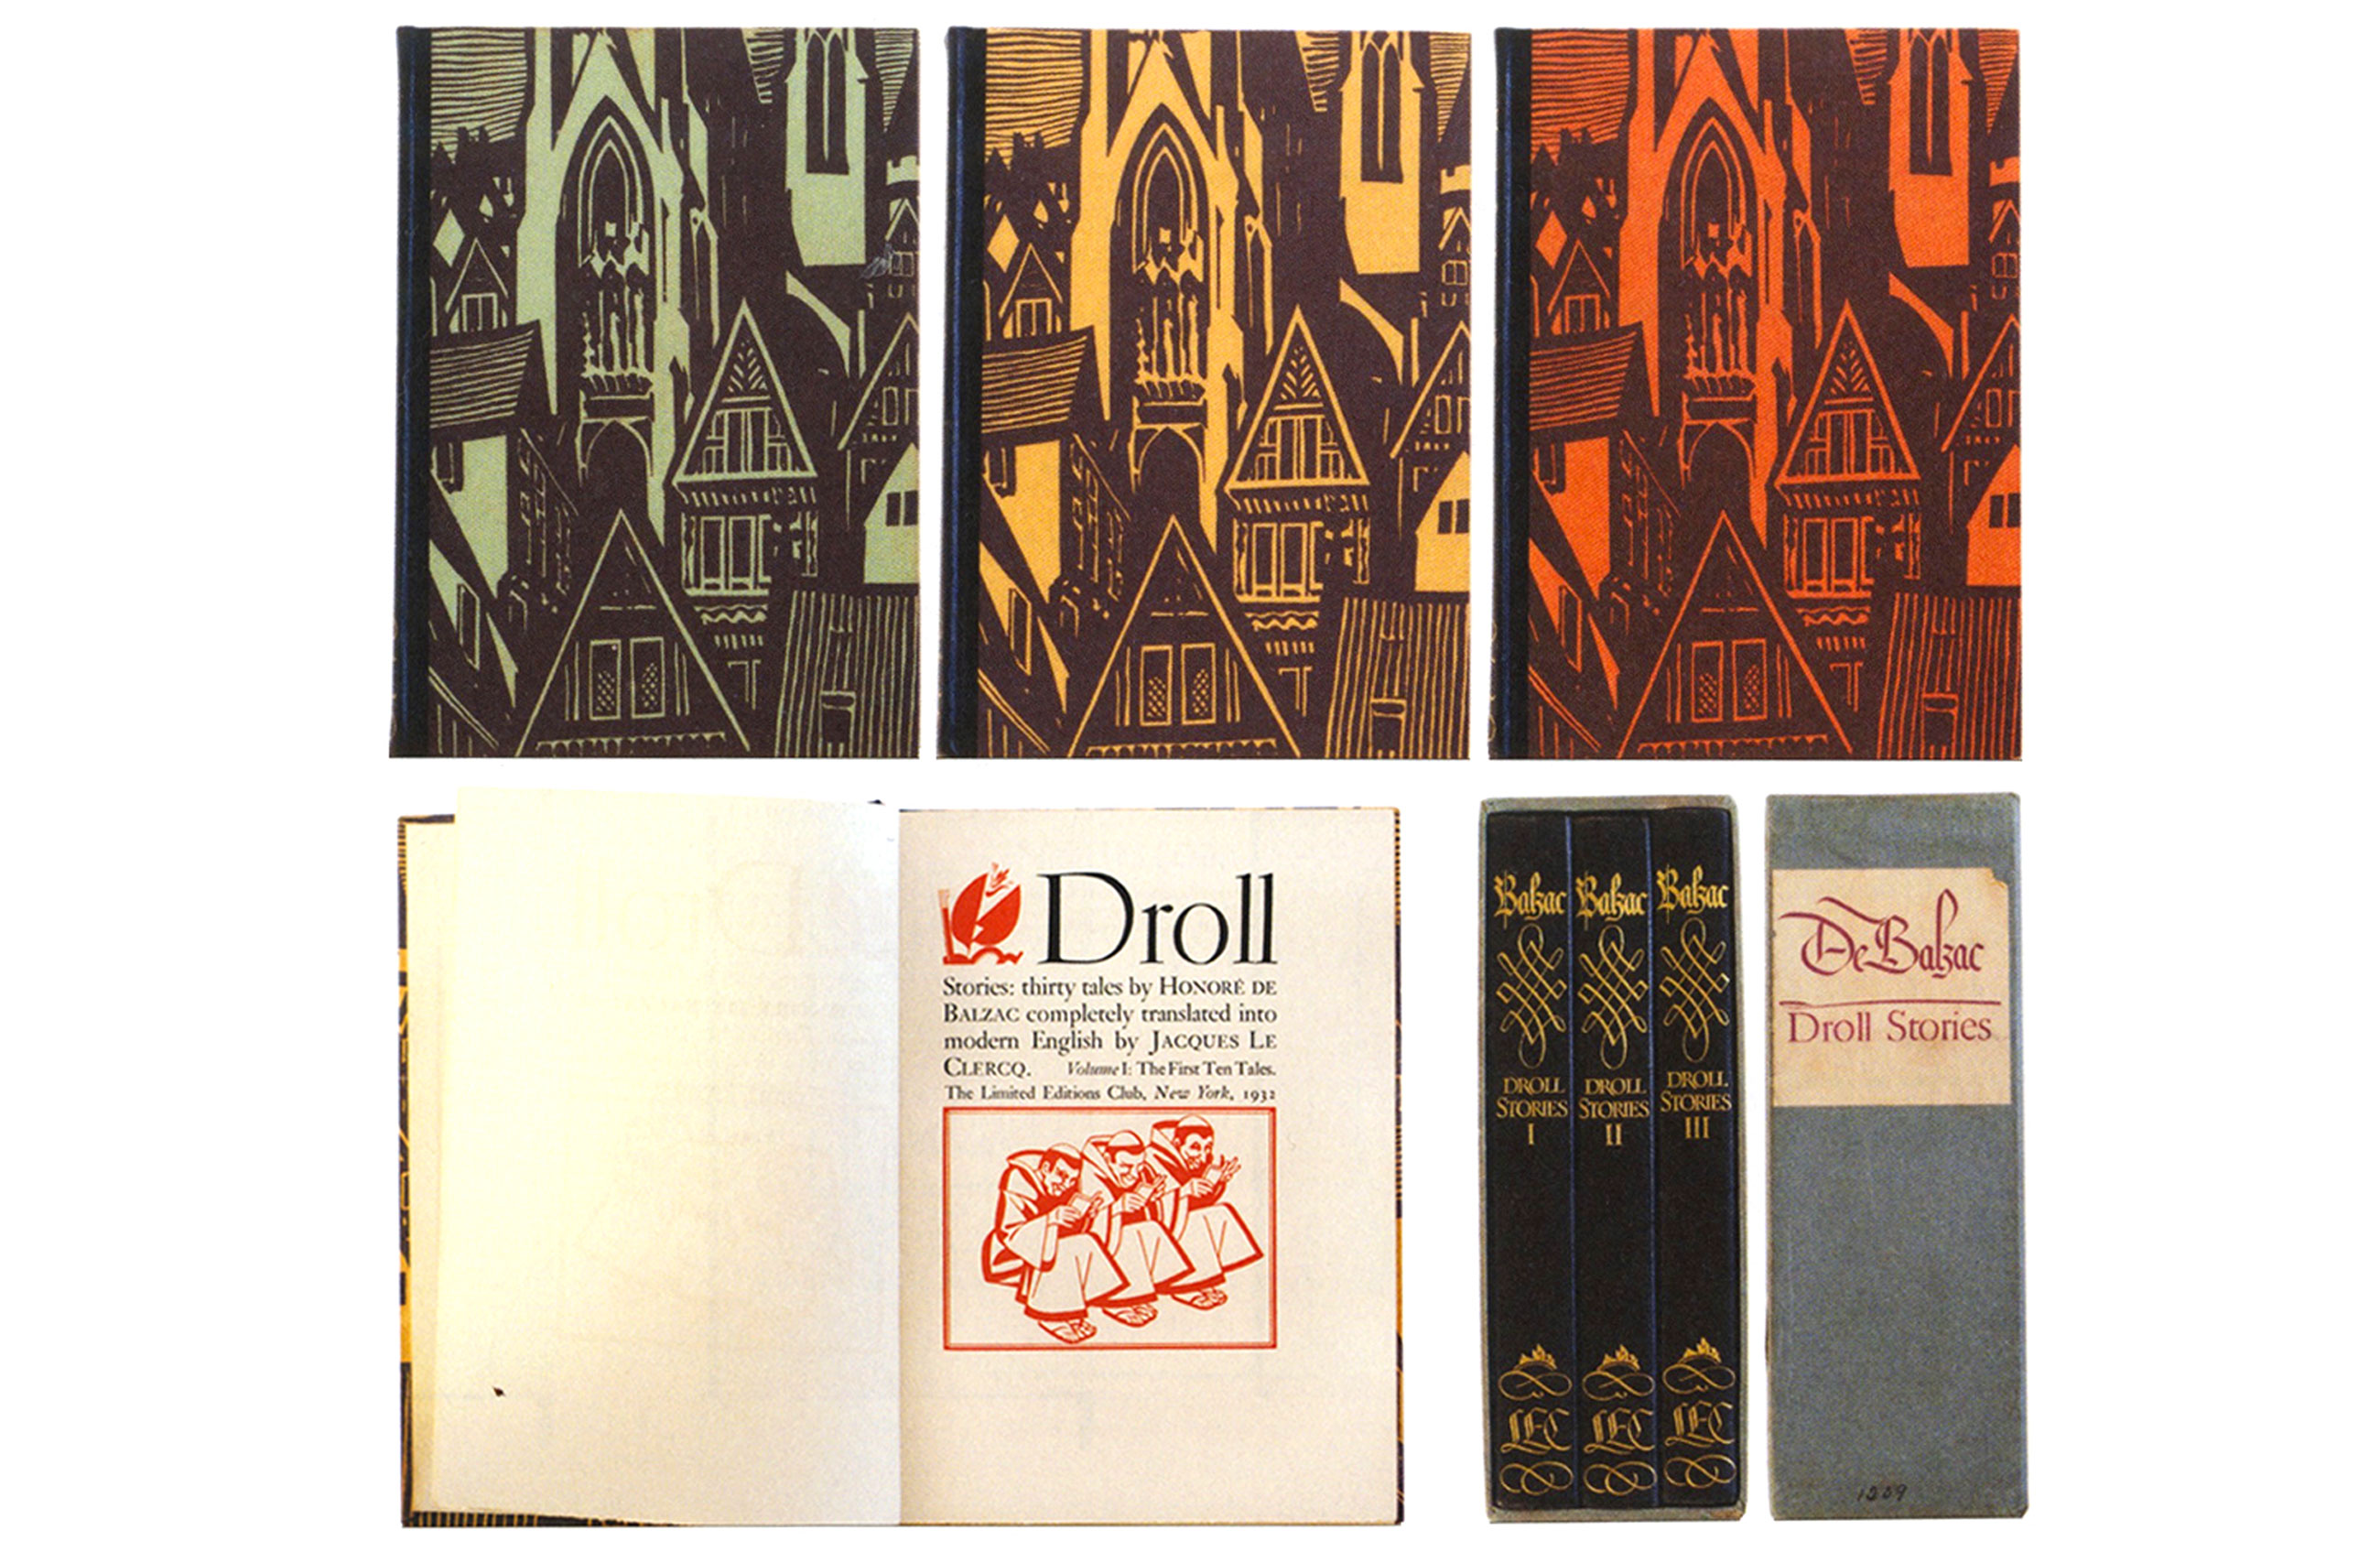 William-Addison-Dwiggins-DROLL-STORIES-Honore-de-BALZAC-1932